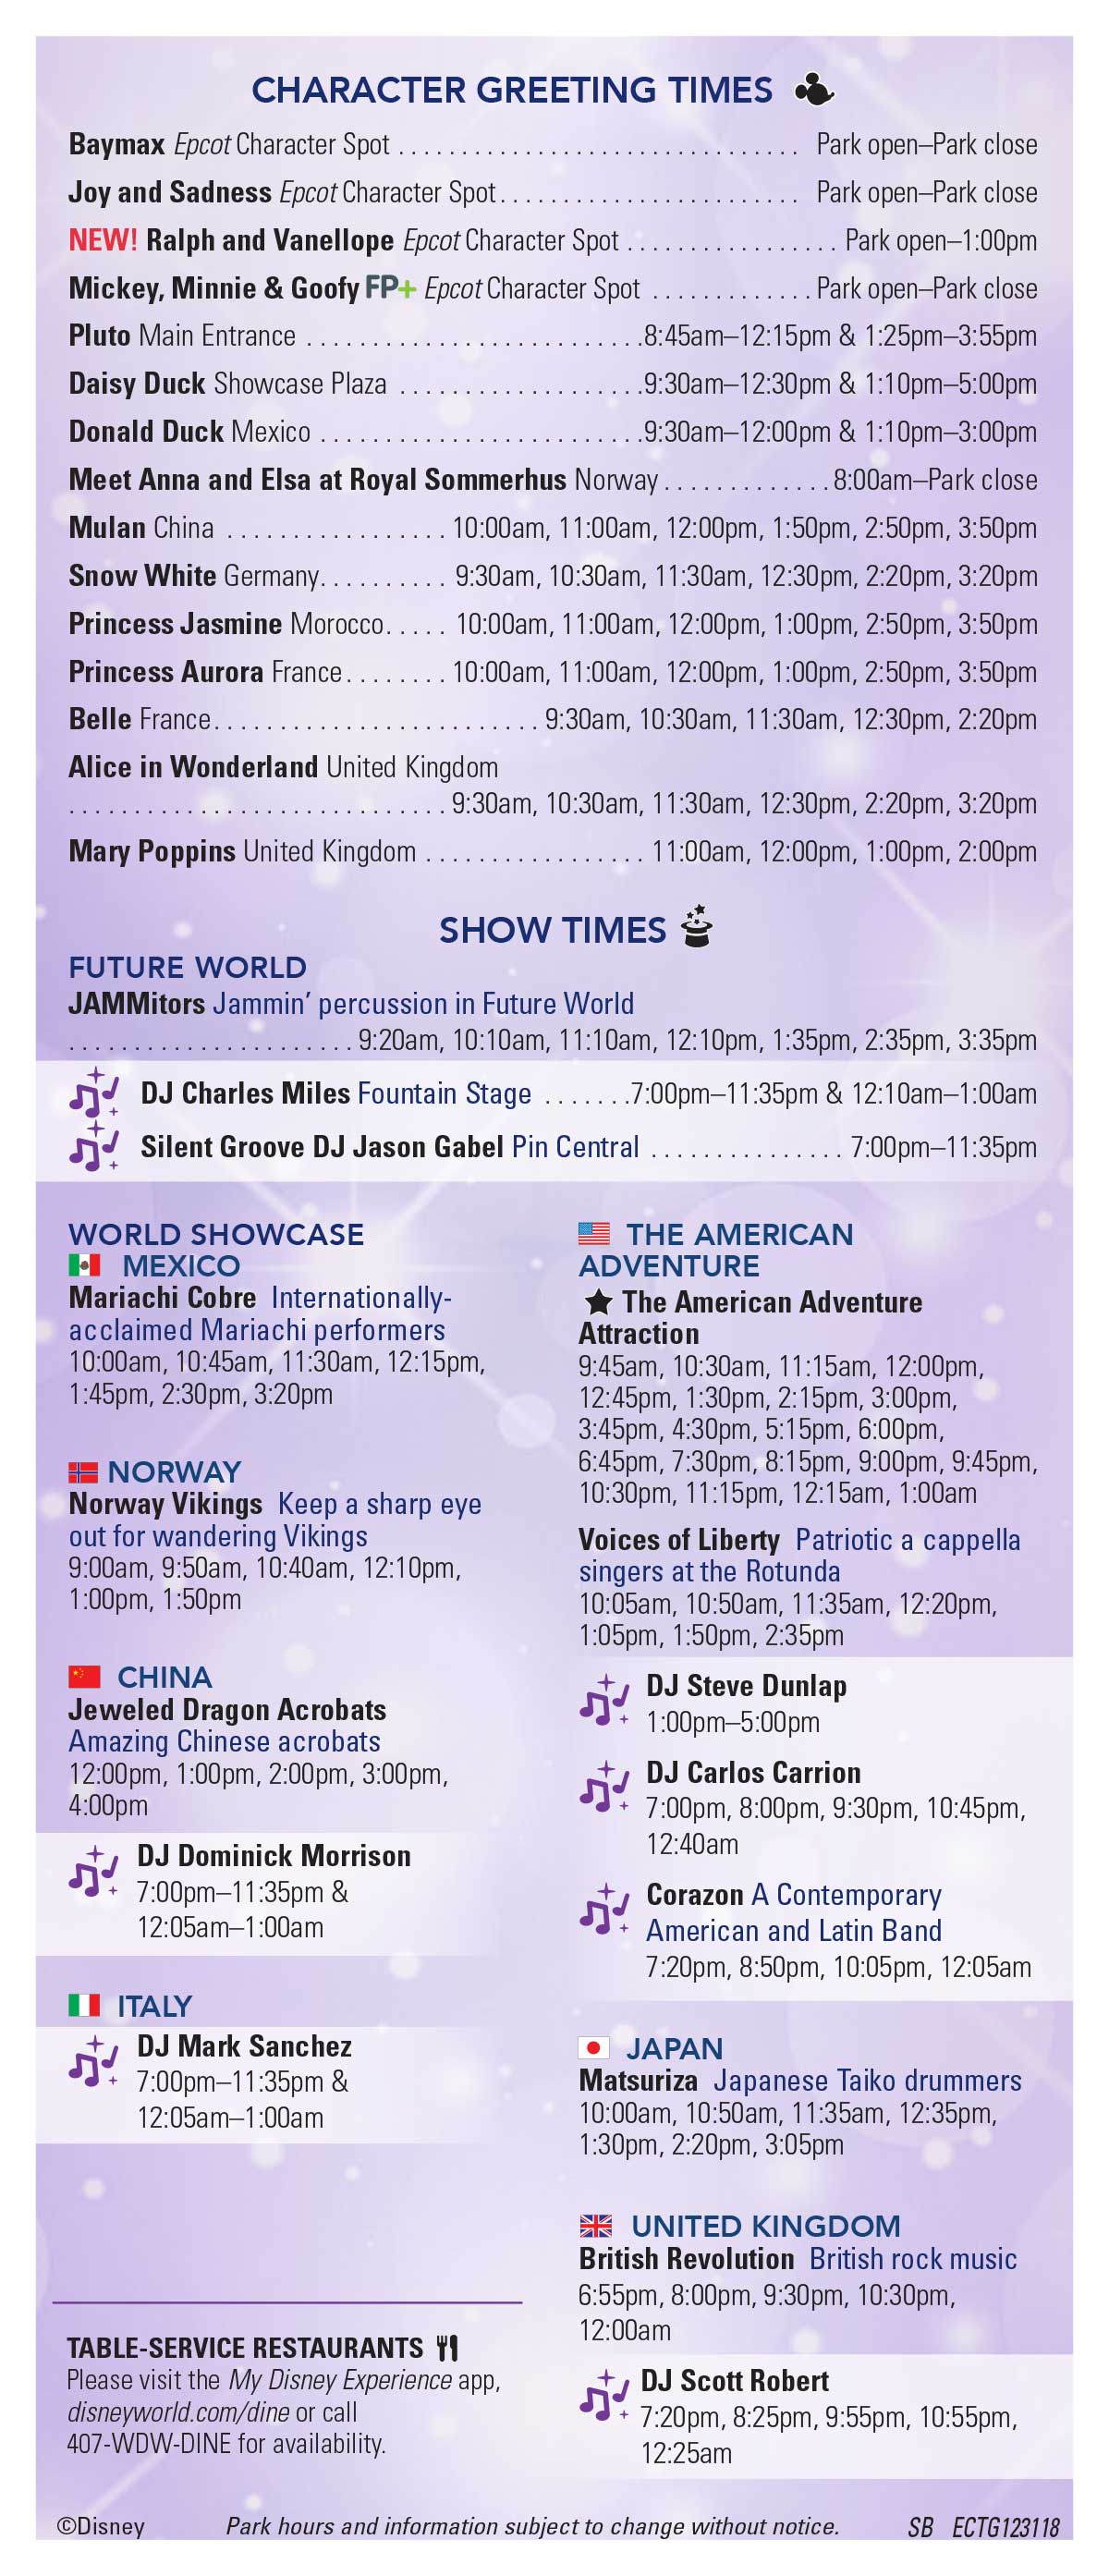 2018 Epcot New Year's Eve Times Guide